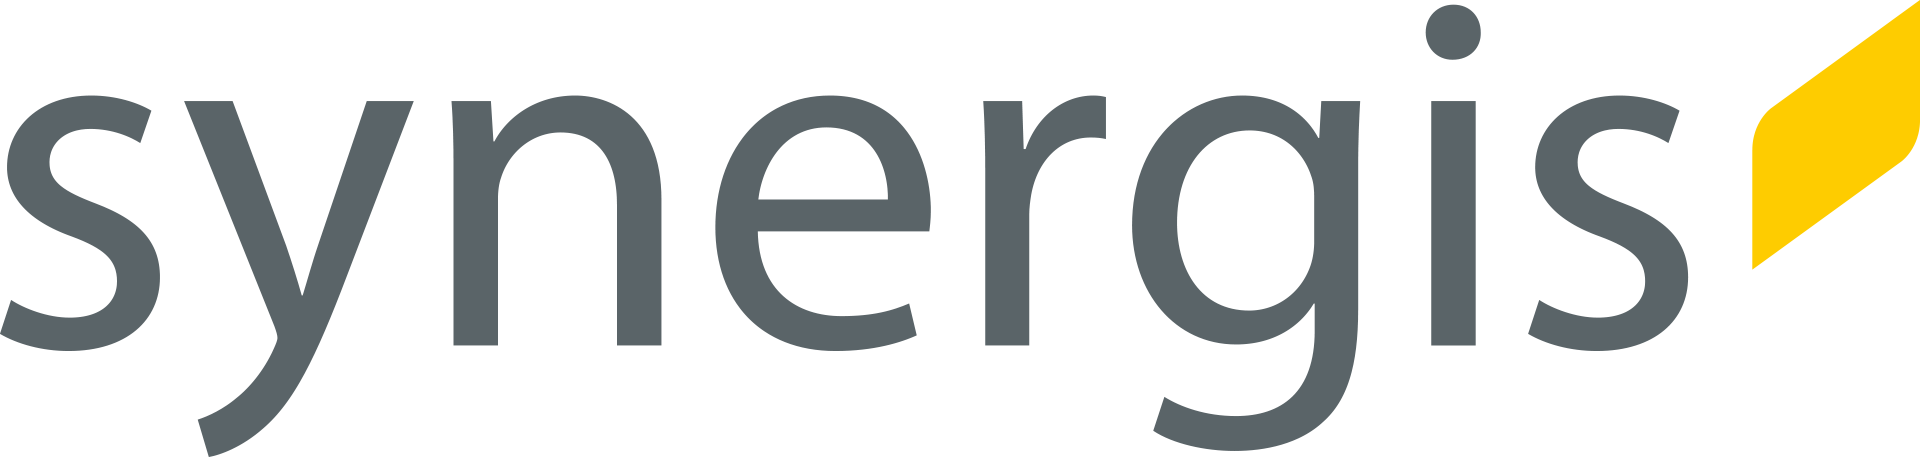 logo synergis.png